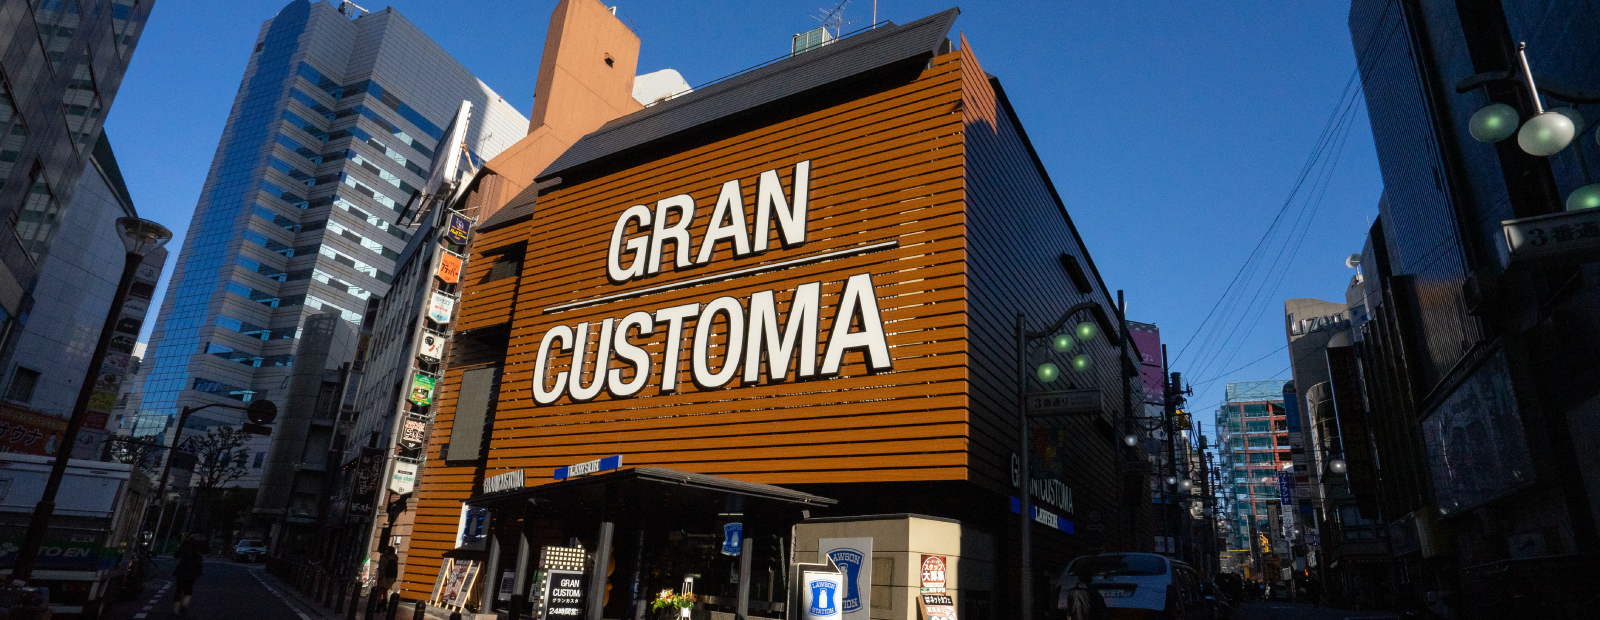 歌舞伎町 GRAN CUSTOMA PROJECT